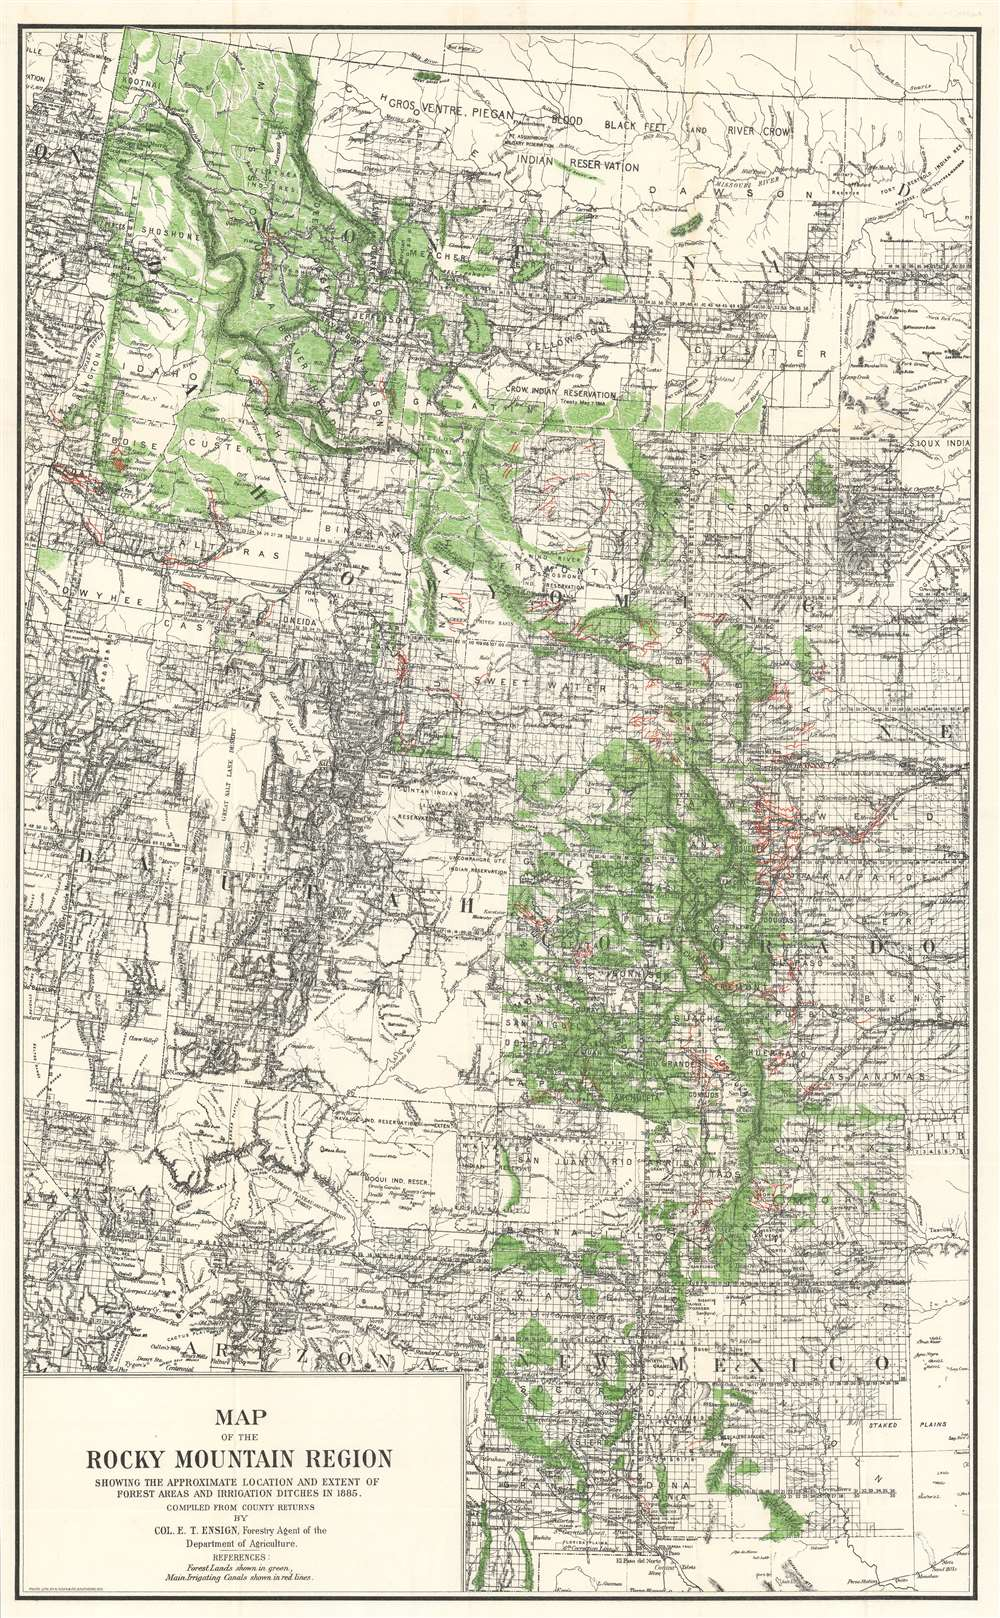 Map of the Rocky Mountain Region Showing the Approximate Location and Extent of Forest Areas and Irrigation Ditches in 1885. - Main View